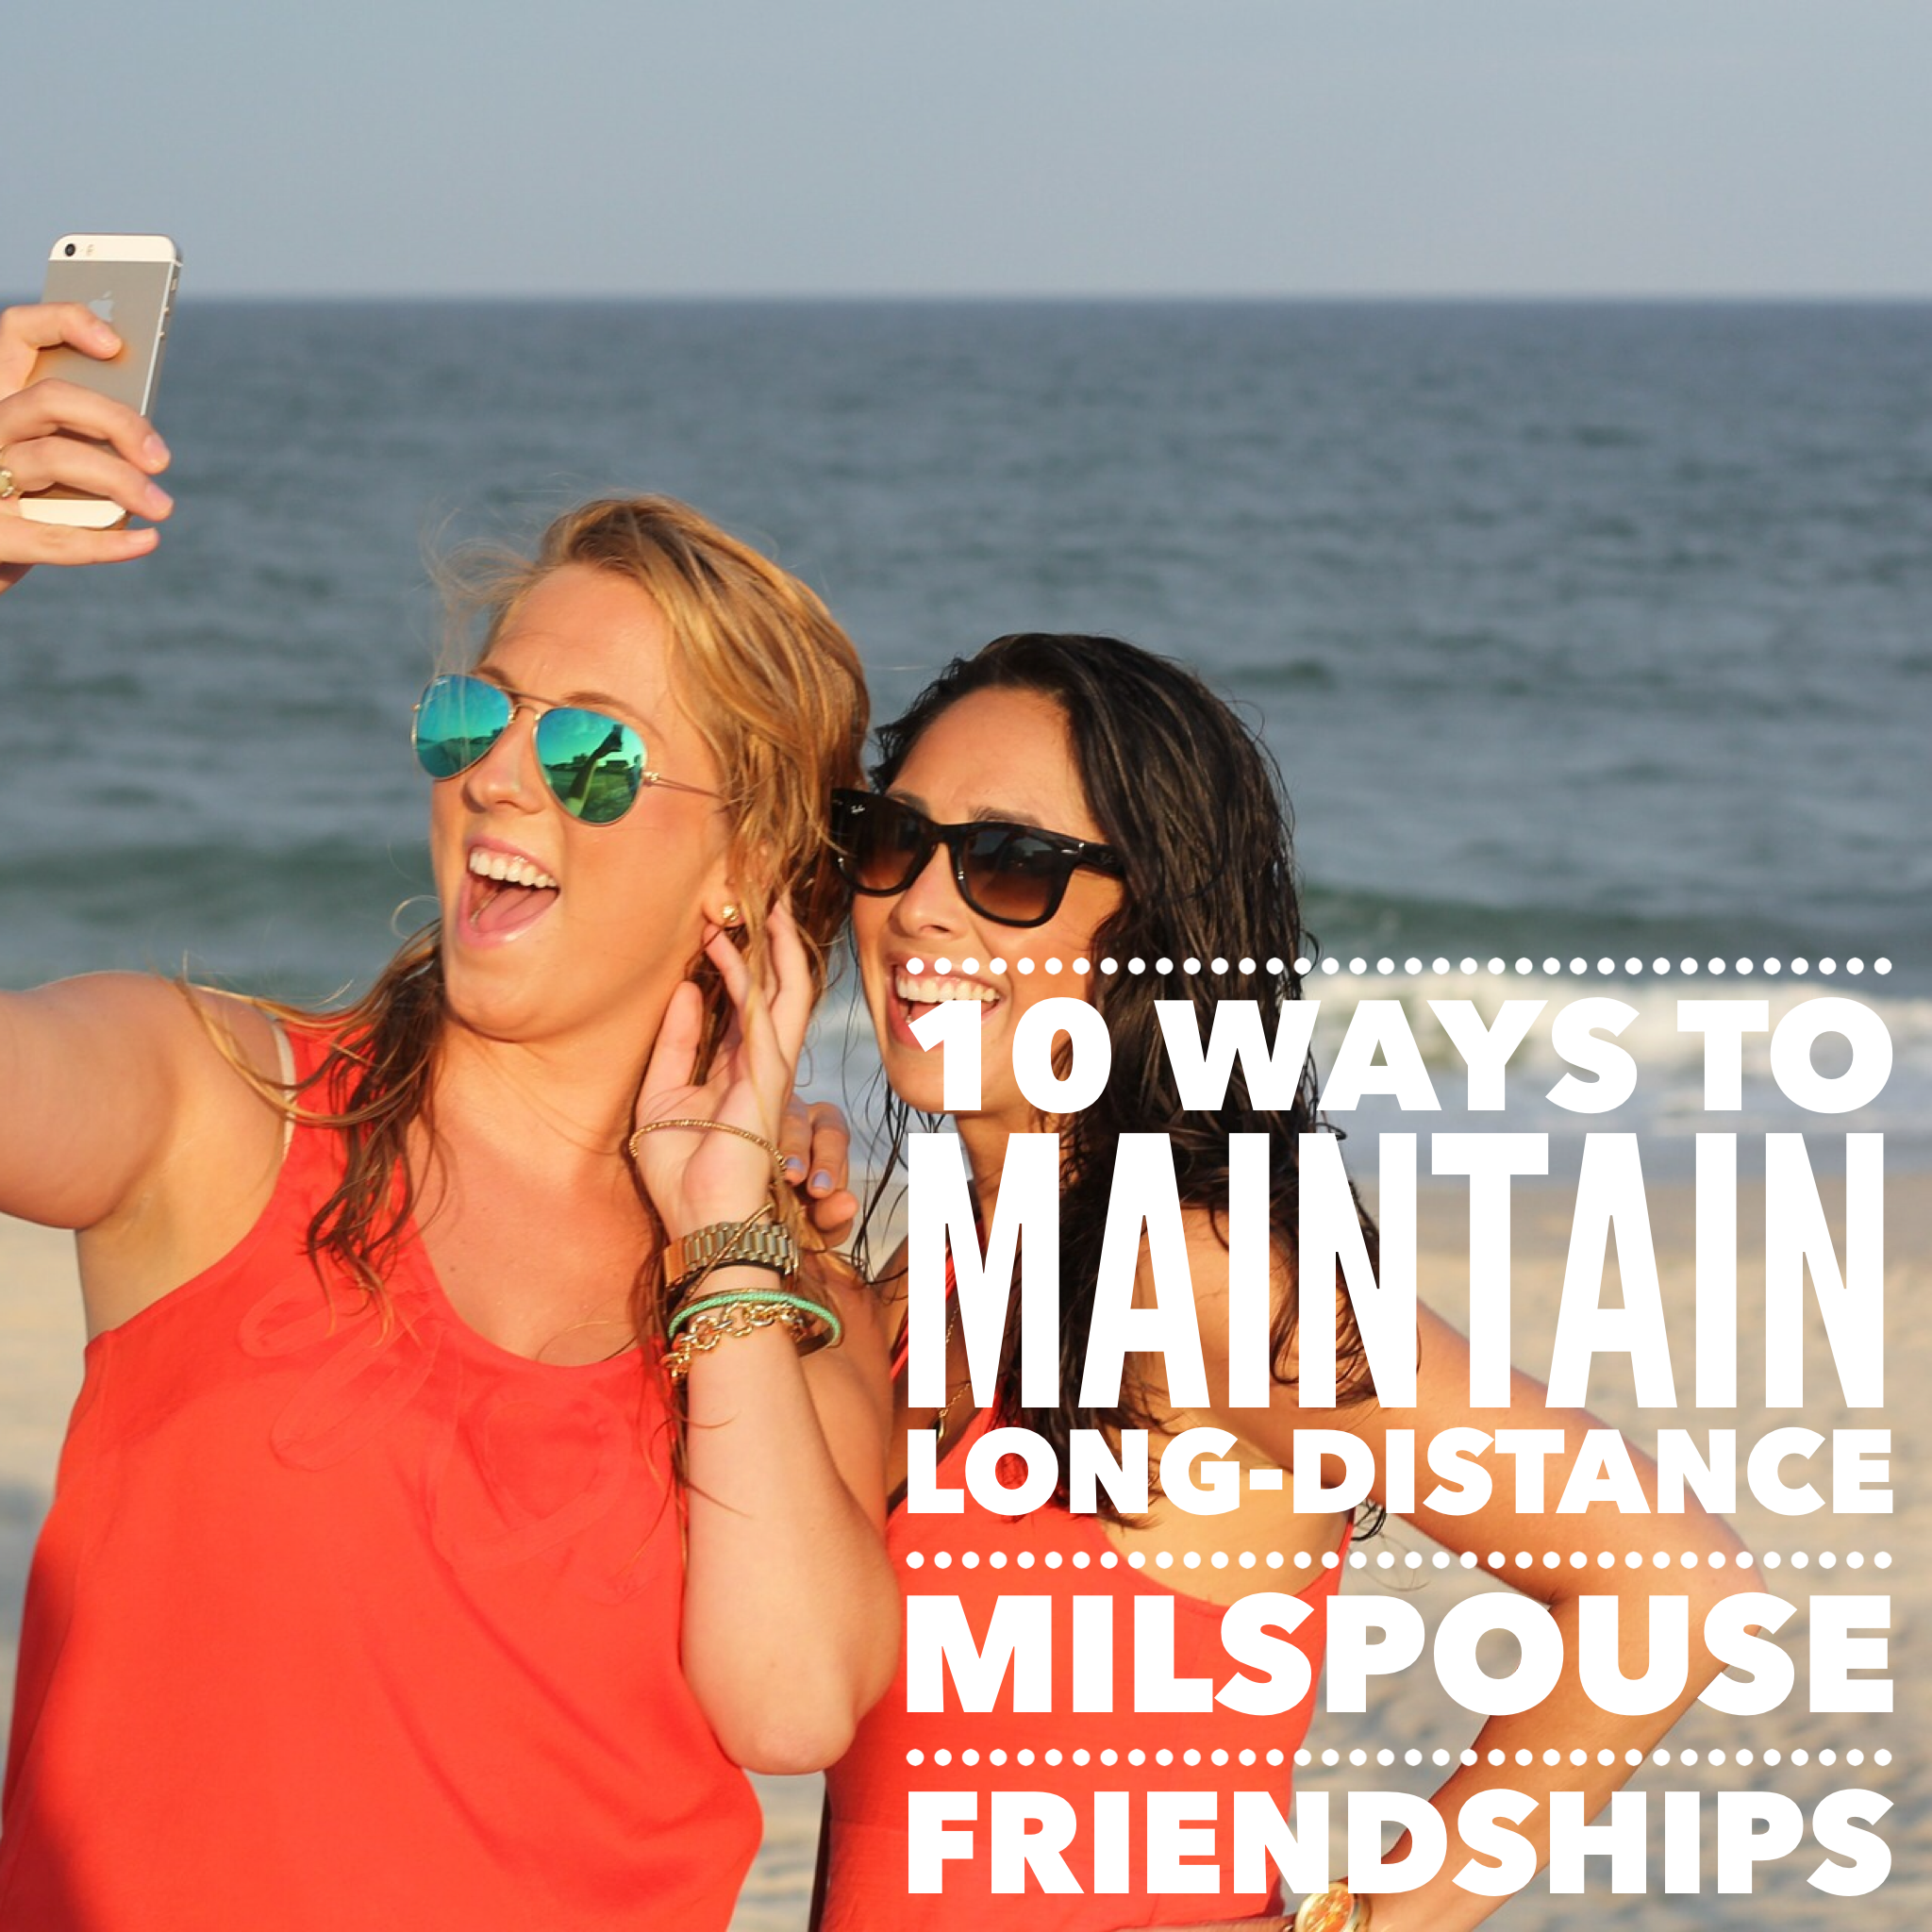 10 Ways To Maintain Long-Distance Milspouse Friendships